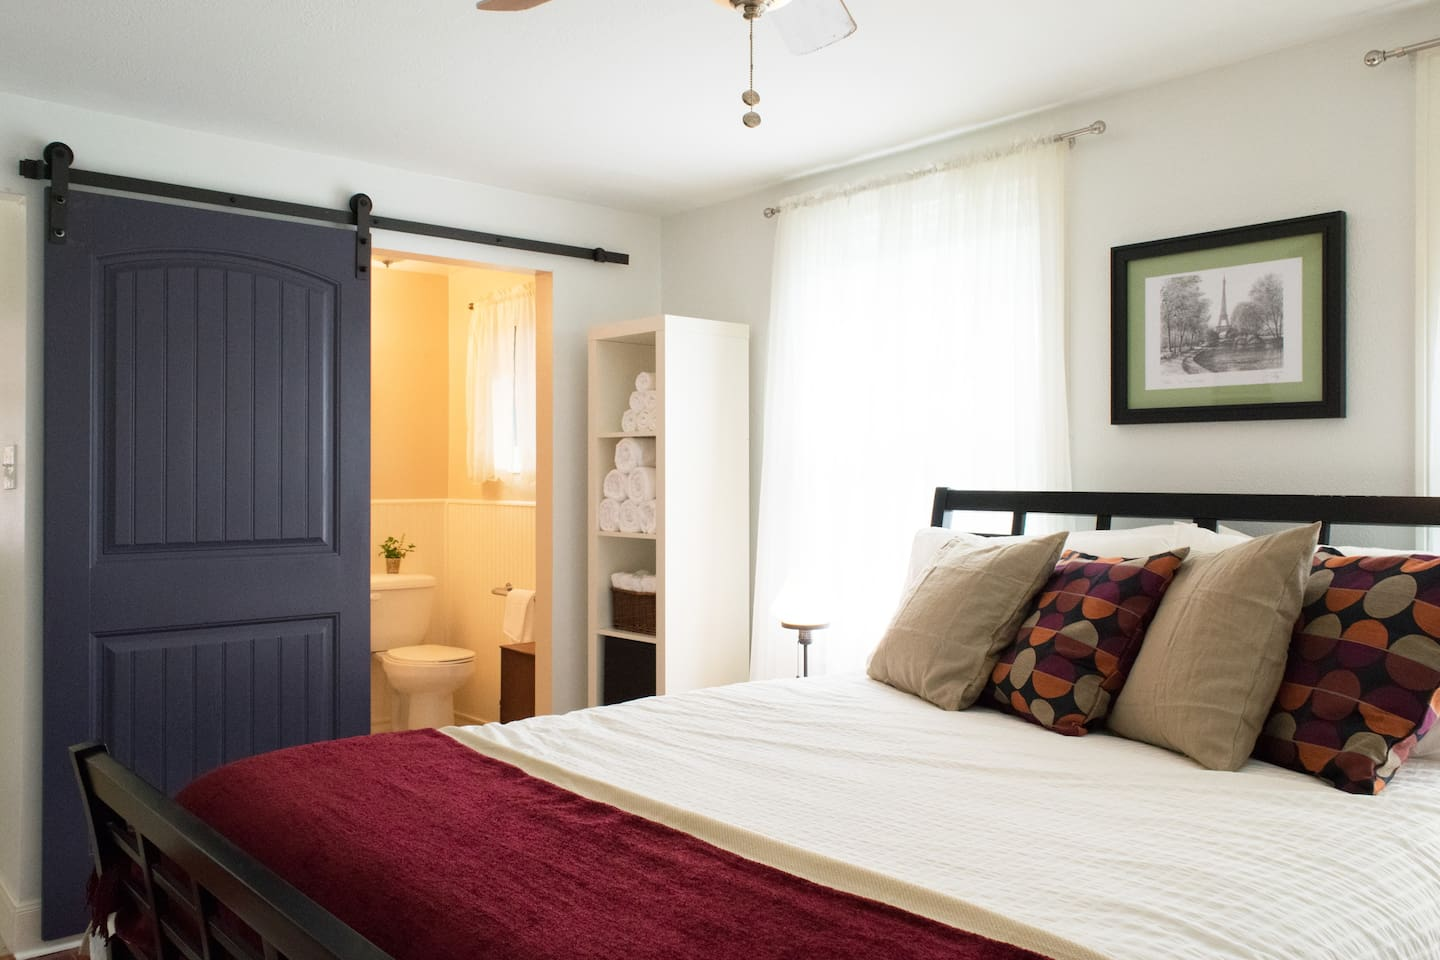 This private bedroom with lots of natural light has a full bathroom attached